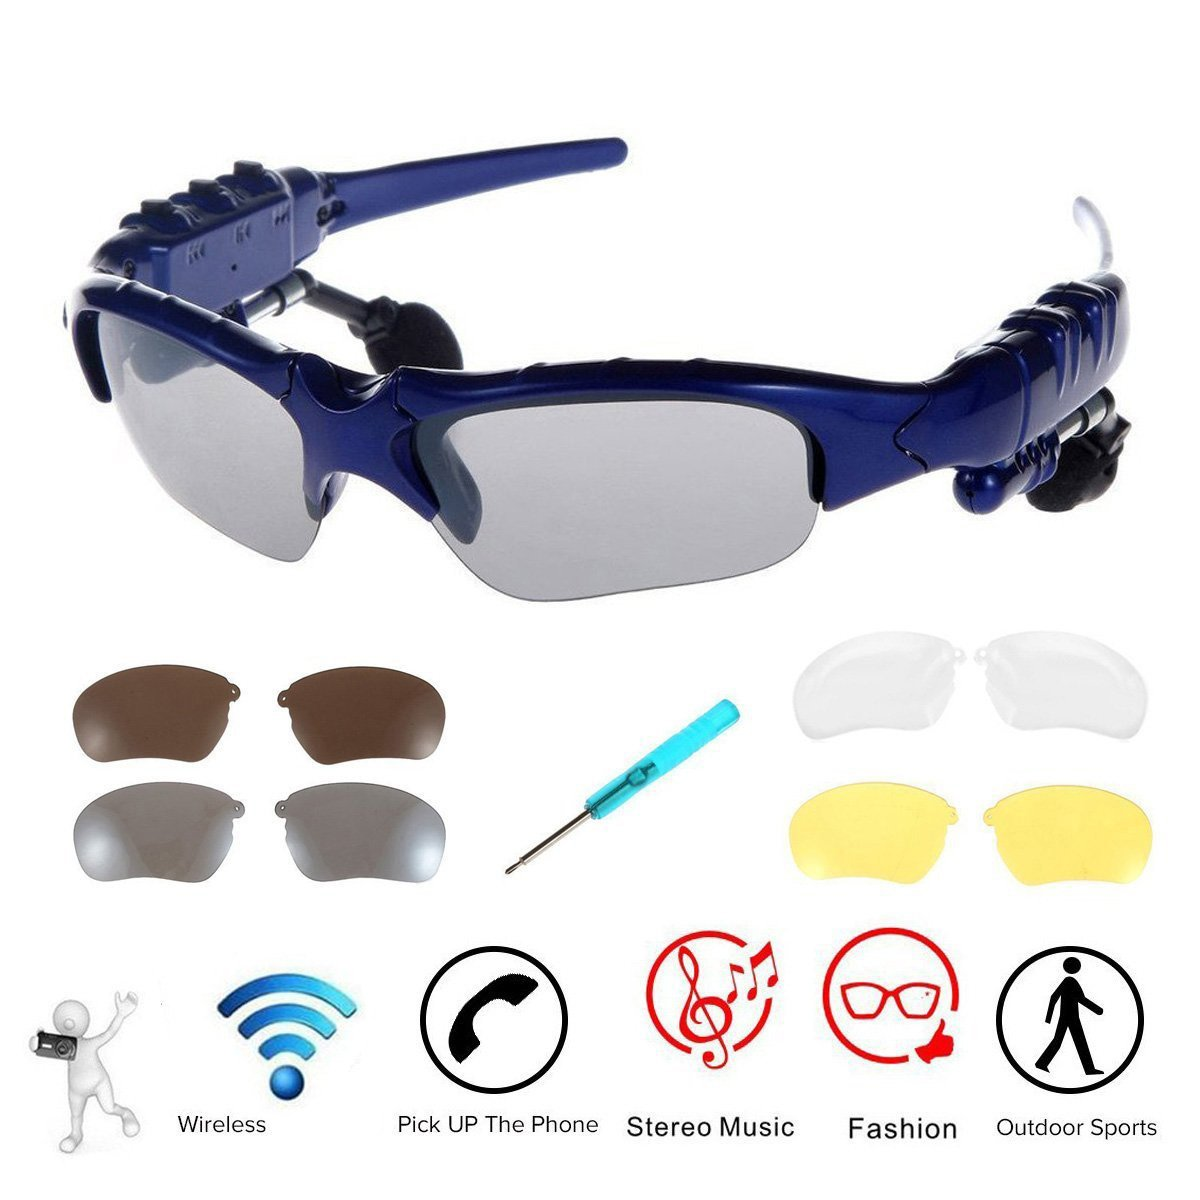 6b4a4d2898ee WONFAST Bluetooth Sunglasses Sun Glasses Music Handsfree Headset Headphones  for Smart Phone PC Tablet IPHONE6 /6 PLUS Samsung HTC Bluetooth devices +  Free ...